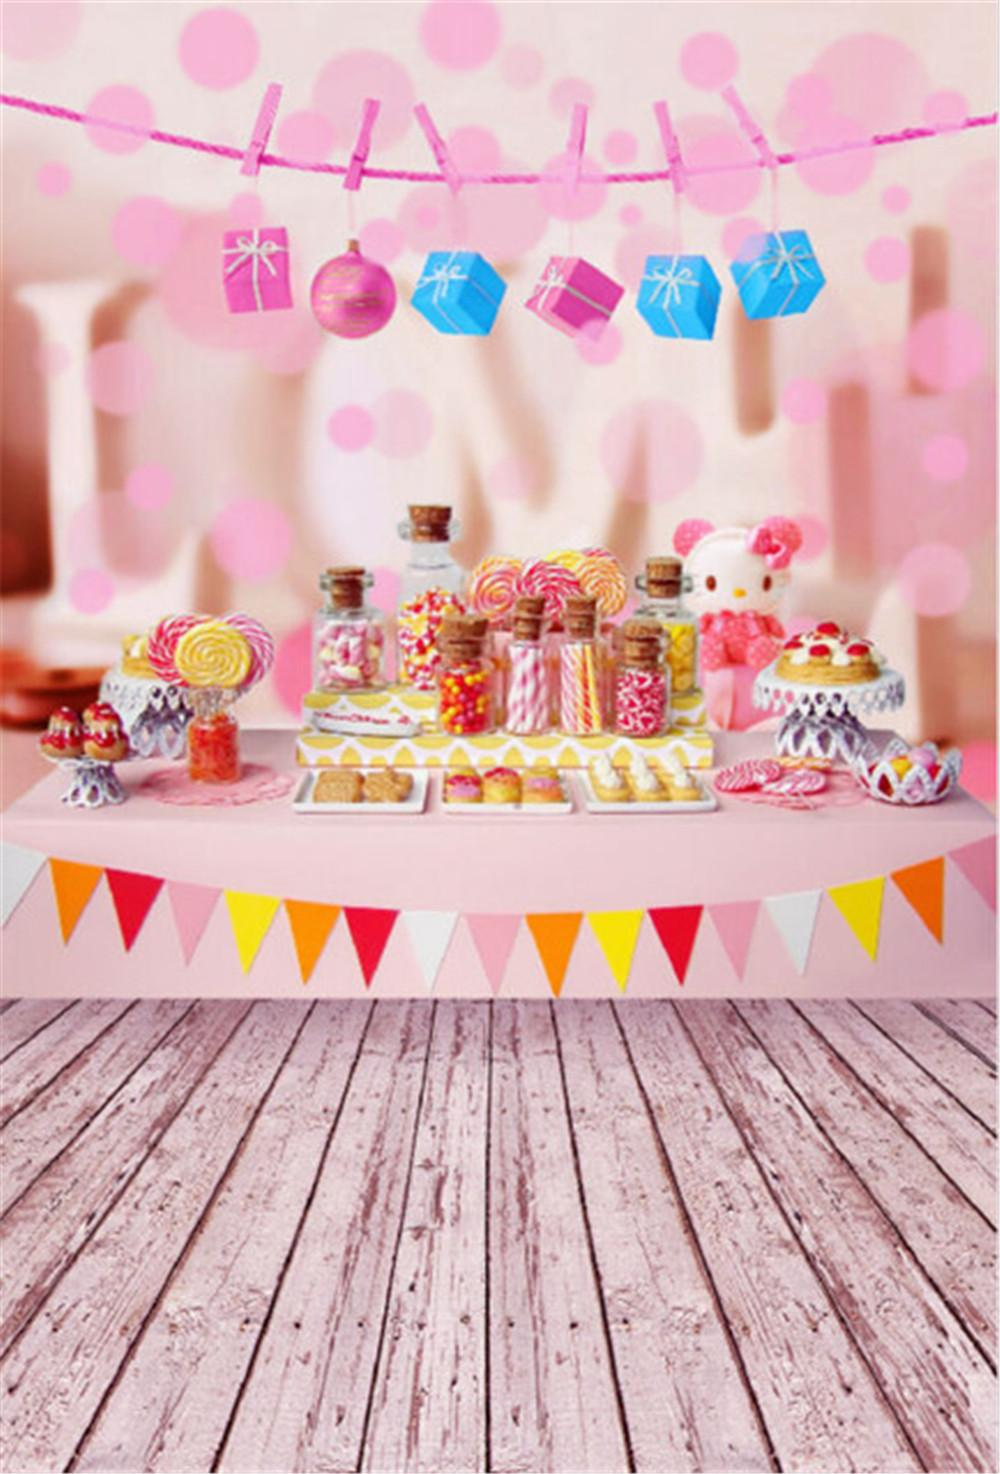 birthday backdrop images ; wood-floor-birthday-party-photographic-backdrop